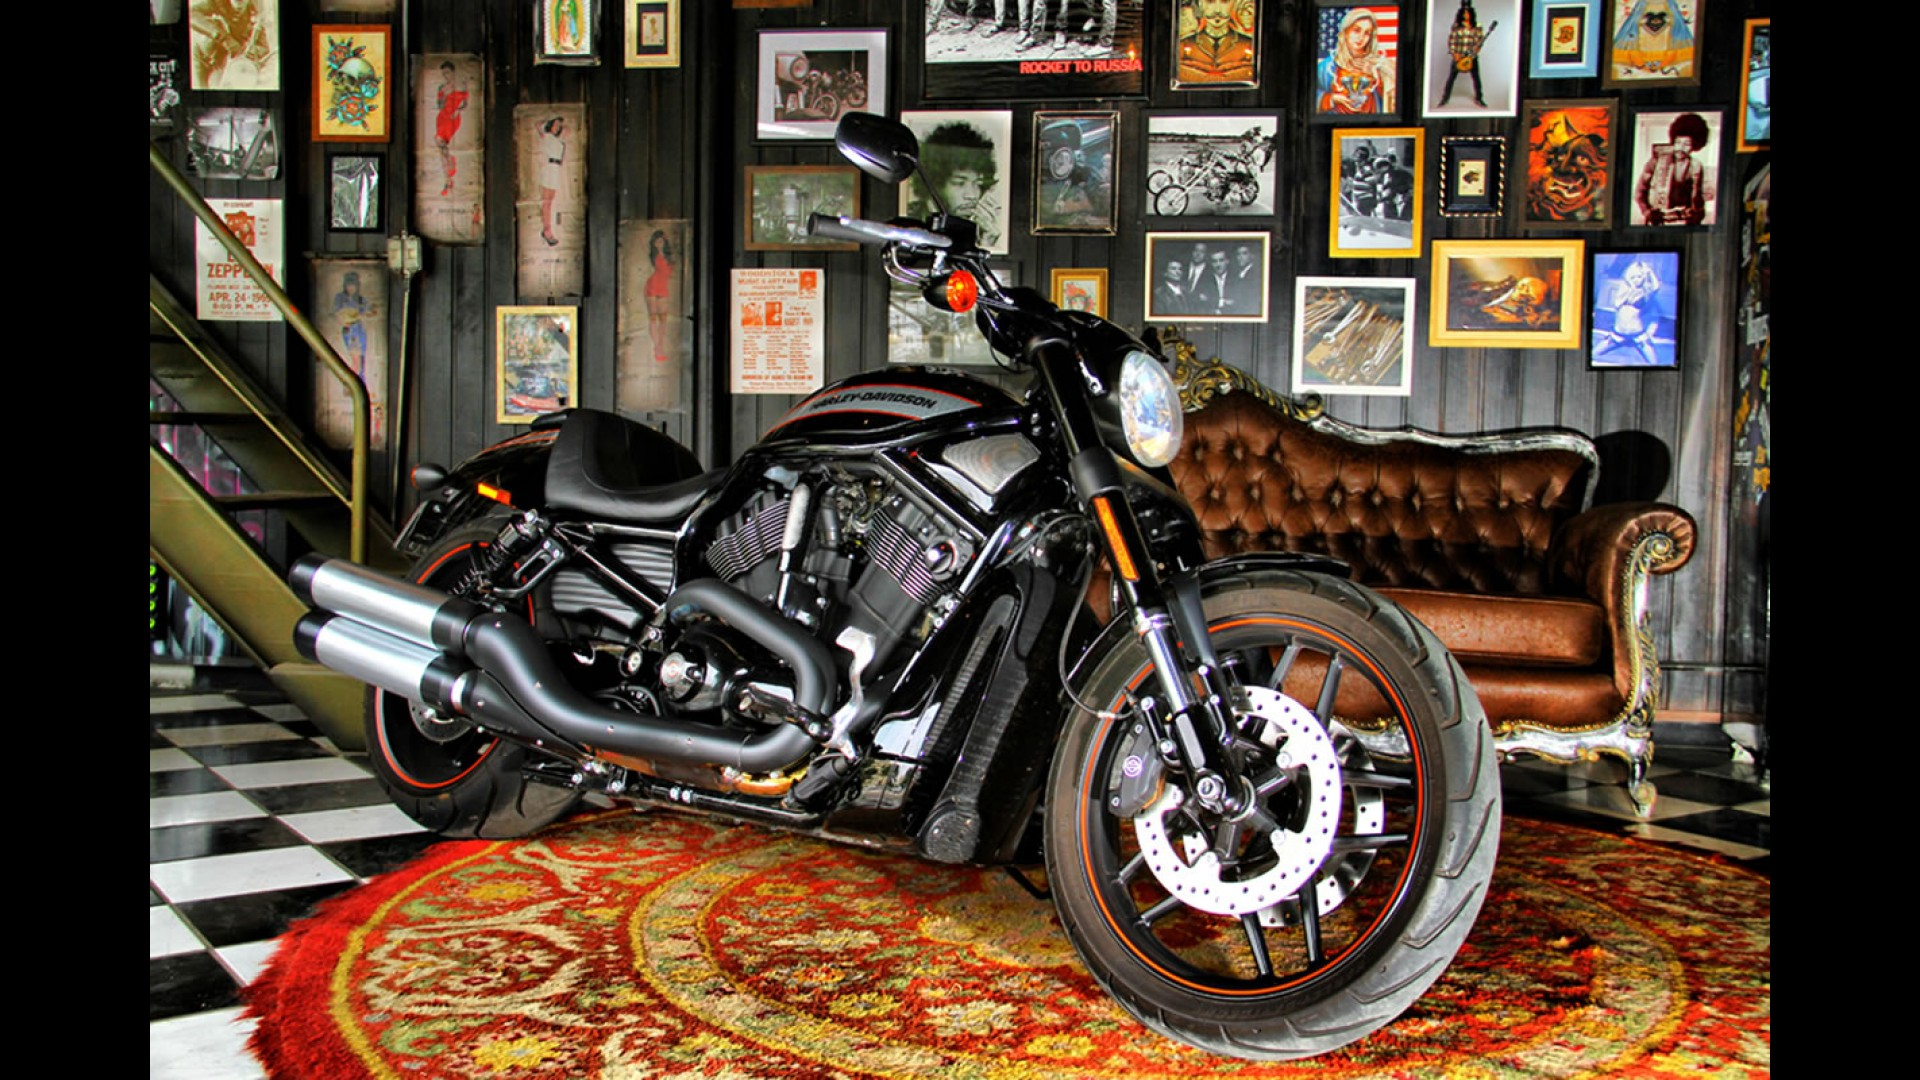 Avaliacao Harley Davidson Night Rod E O Lado Negro Da Forca